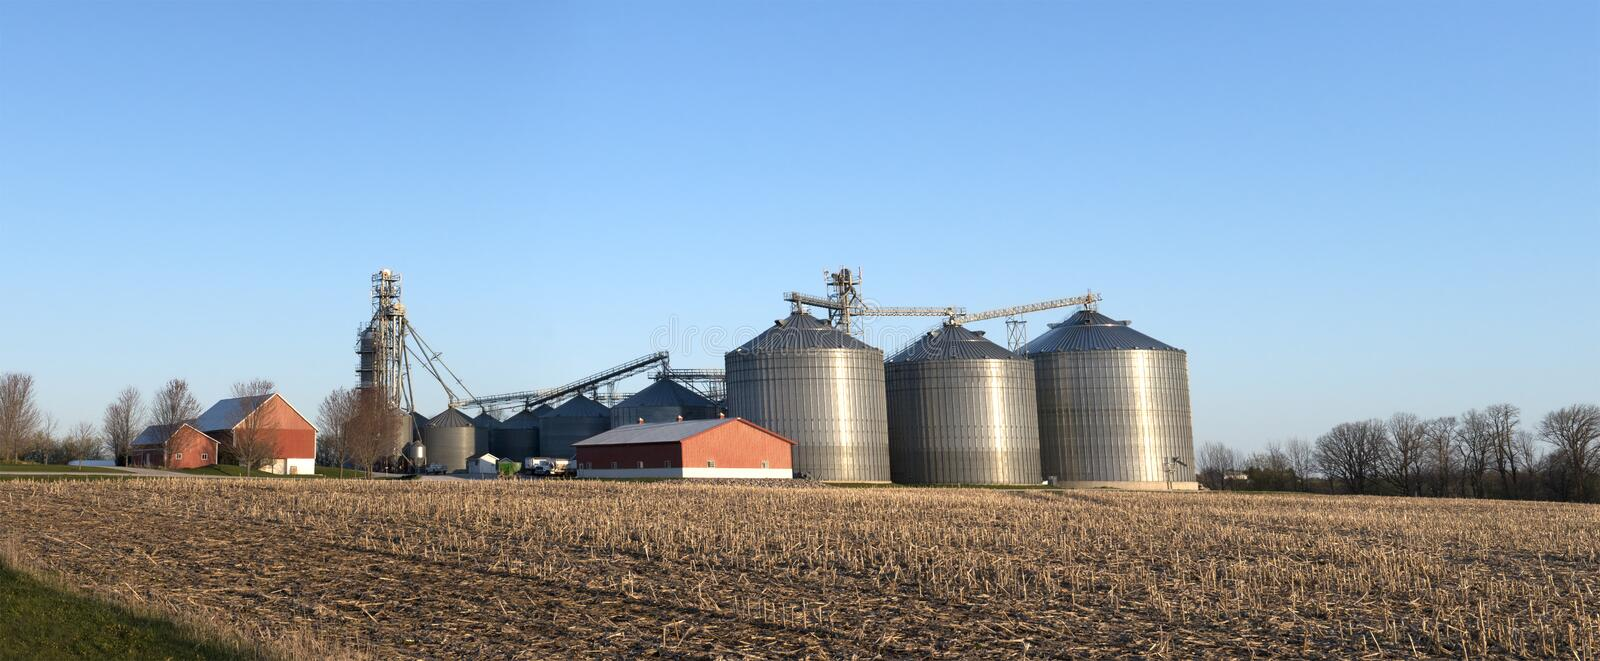 Download Wisconsin Dairy Farm Grain Elevator Silos Stock Image - Image: 24550227